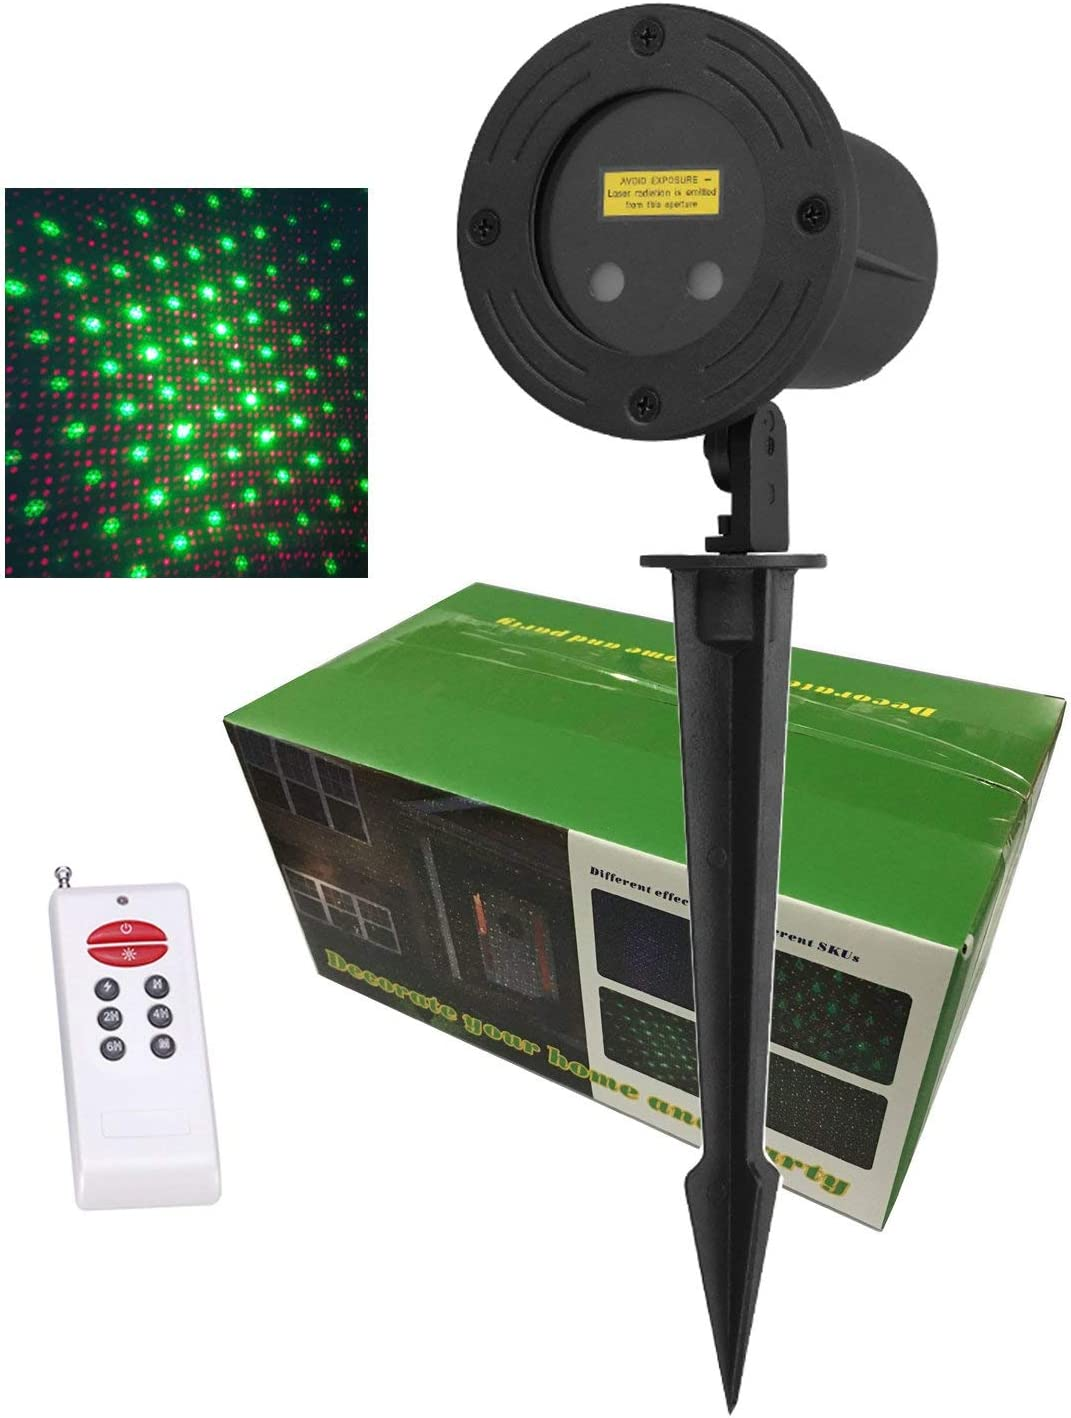 LSIKA-Z Remote Controllable Laser Light